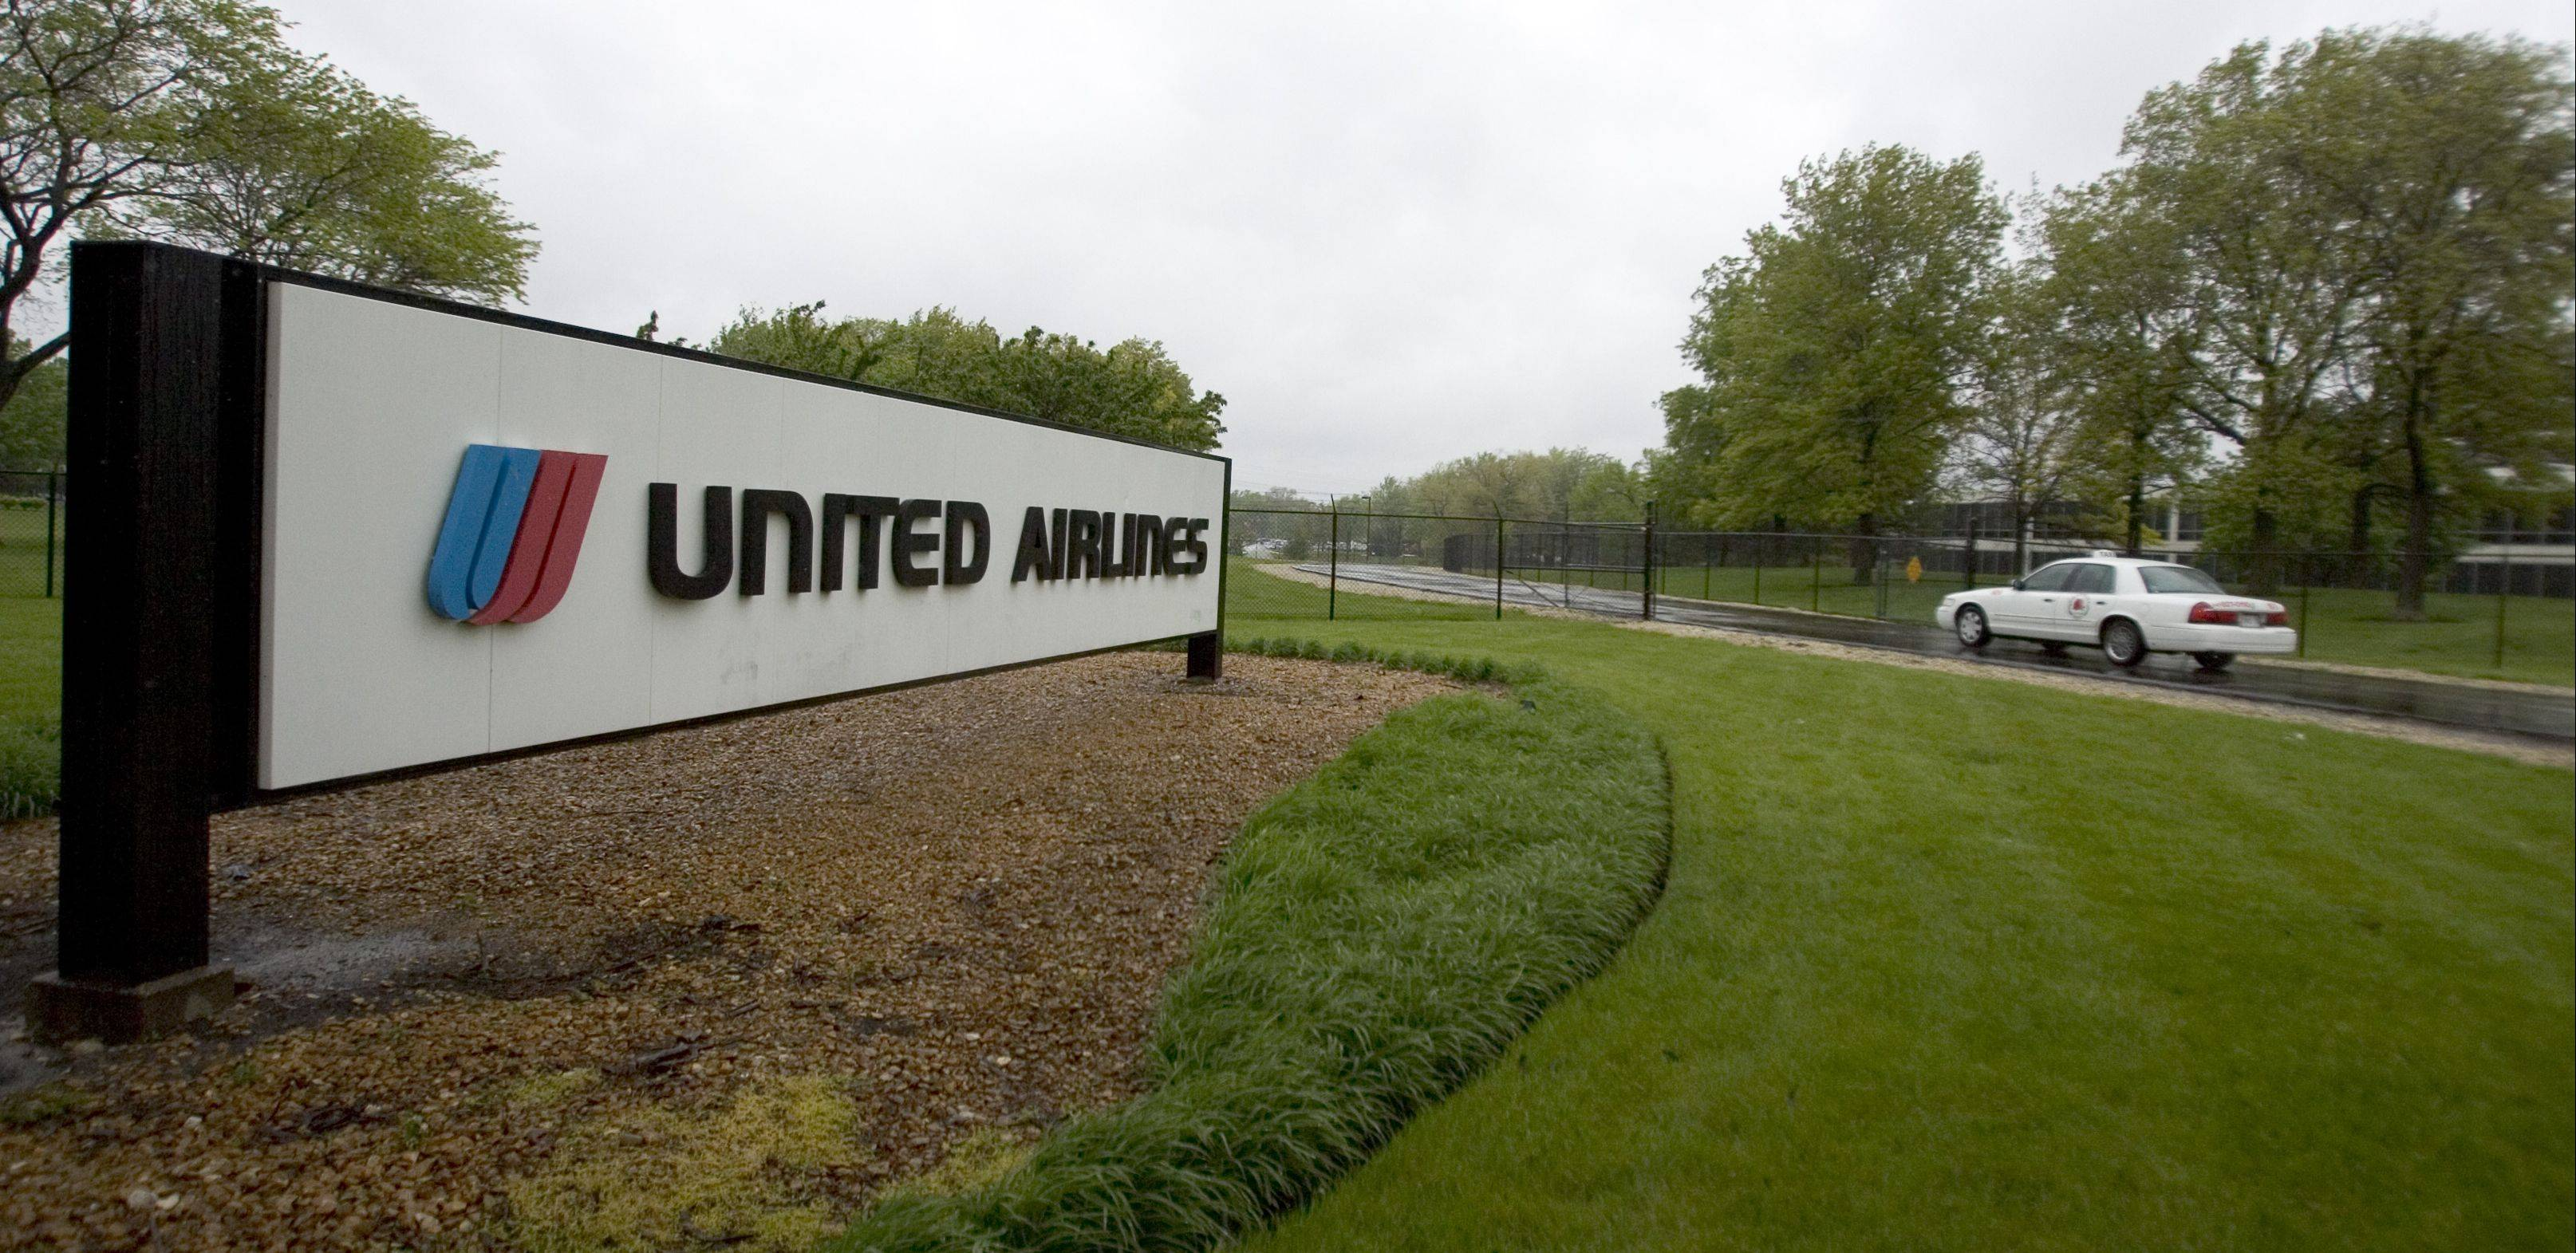 United Airlines has moved its headquarters from this sprawling campus in Elk Grove Township to downtown Chicago.